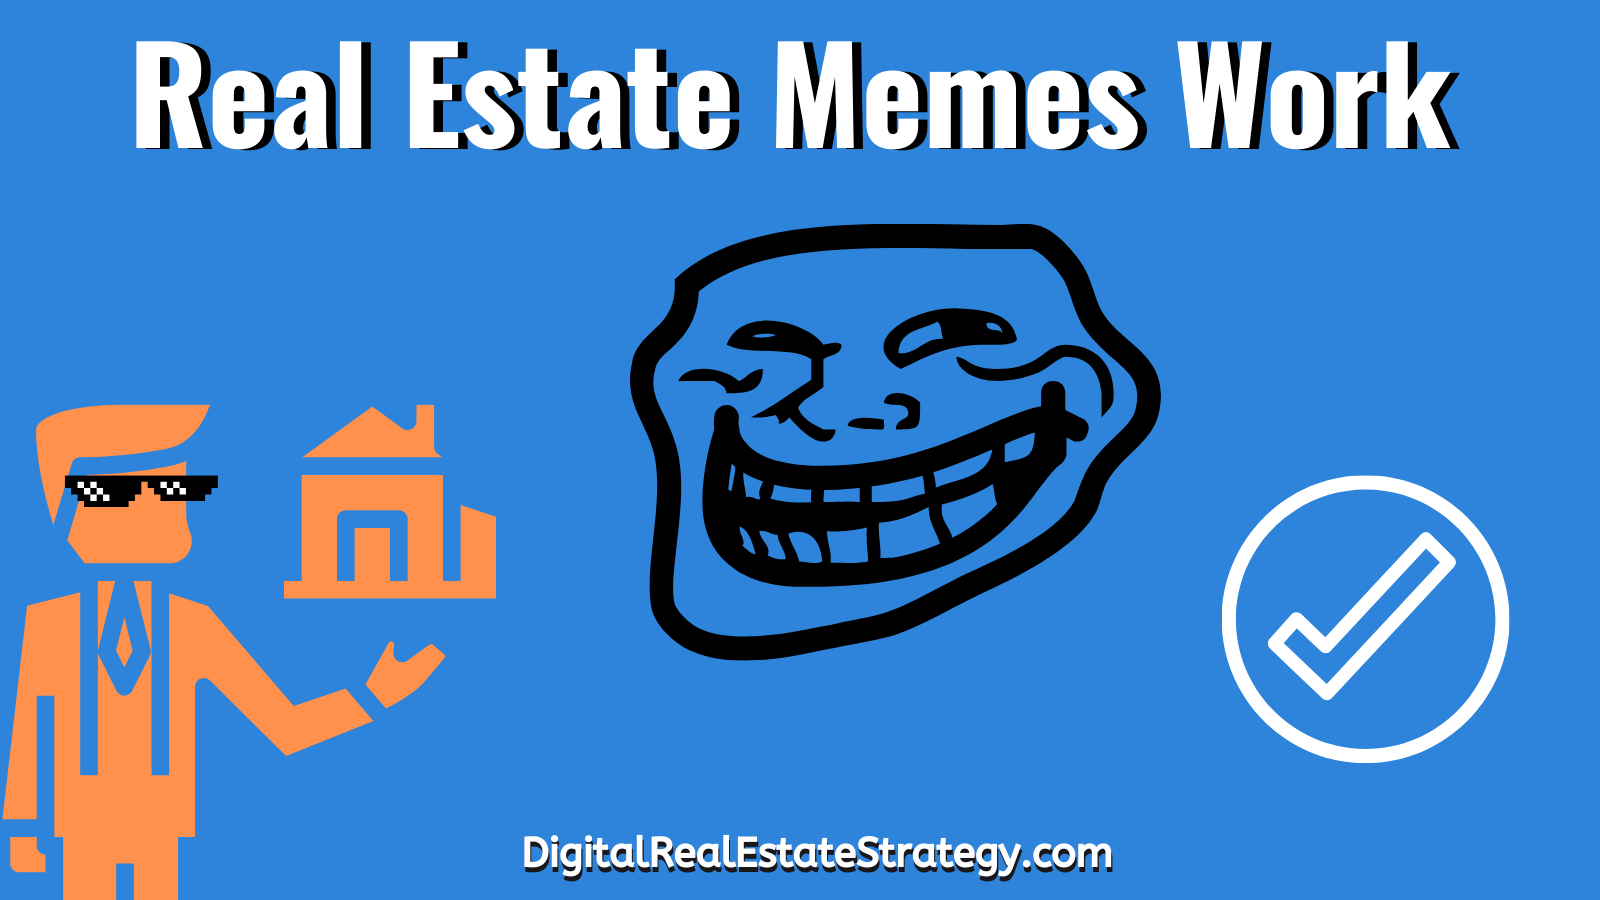 Real Estate Memes Work - Making Real Estate Memes - Jerome Lewis - eXp Realty - Philadelphia - Real Estate Memes Work